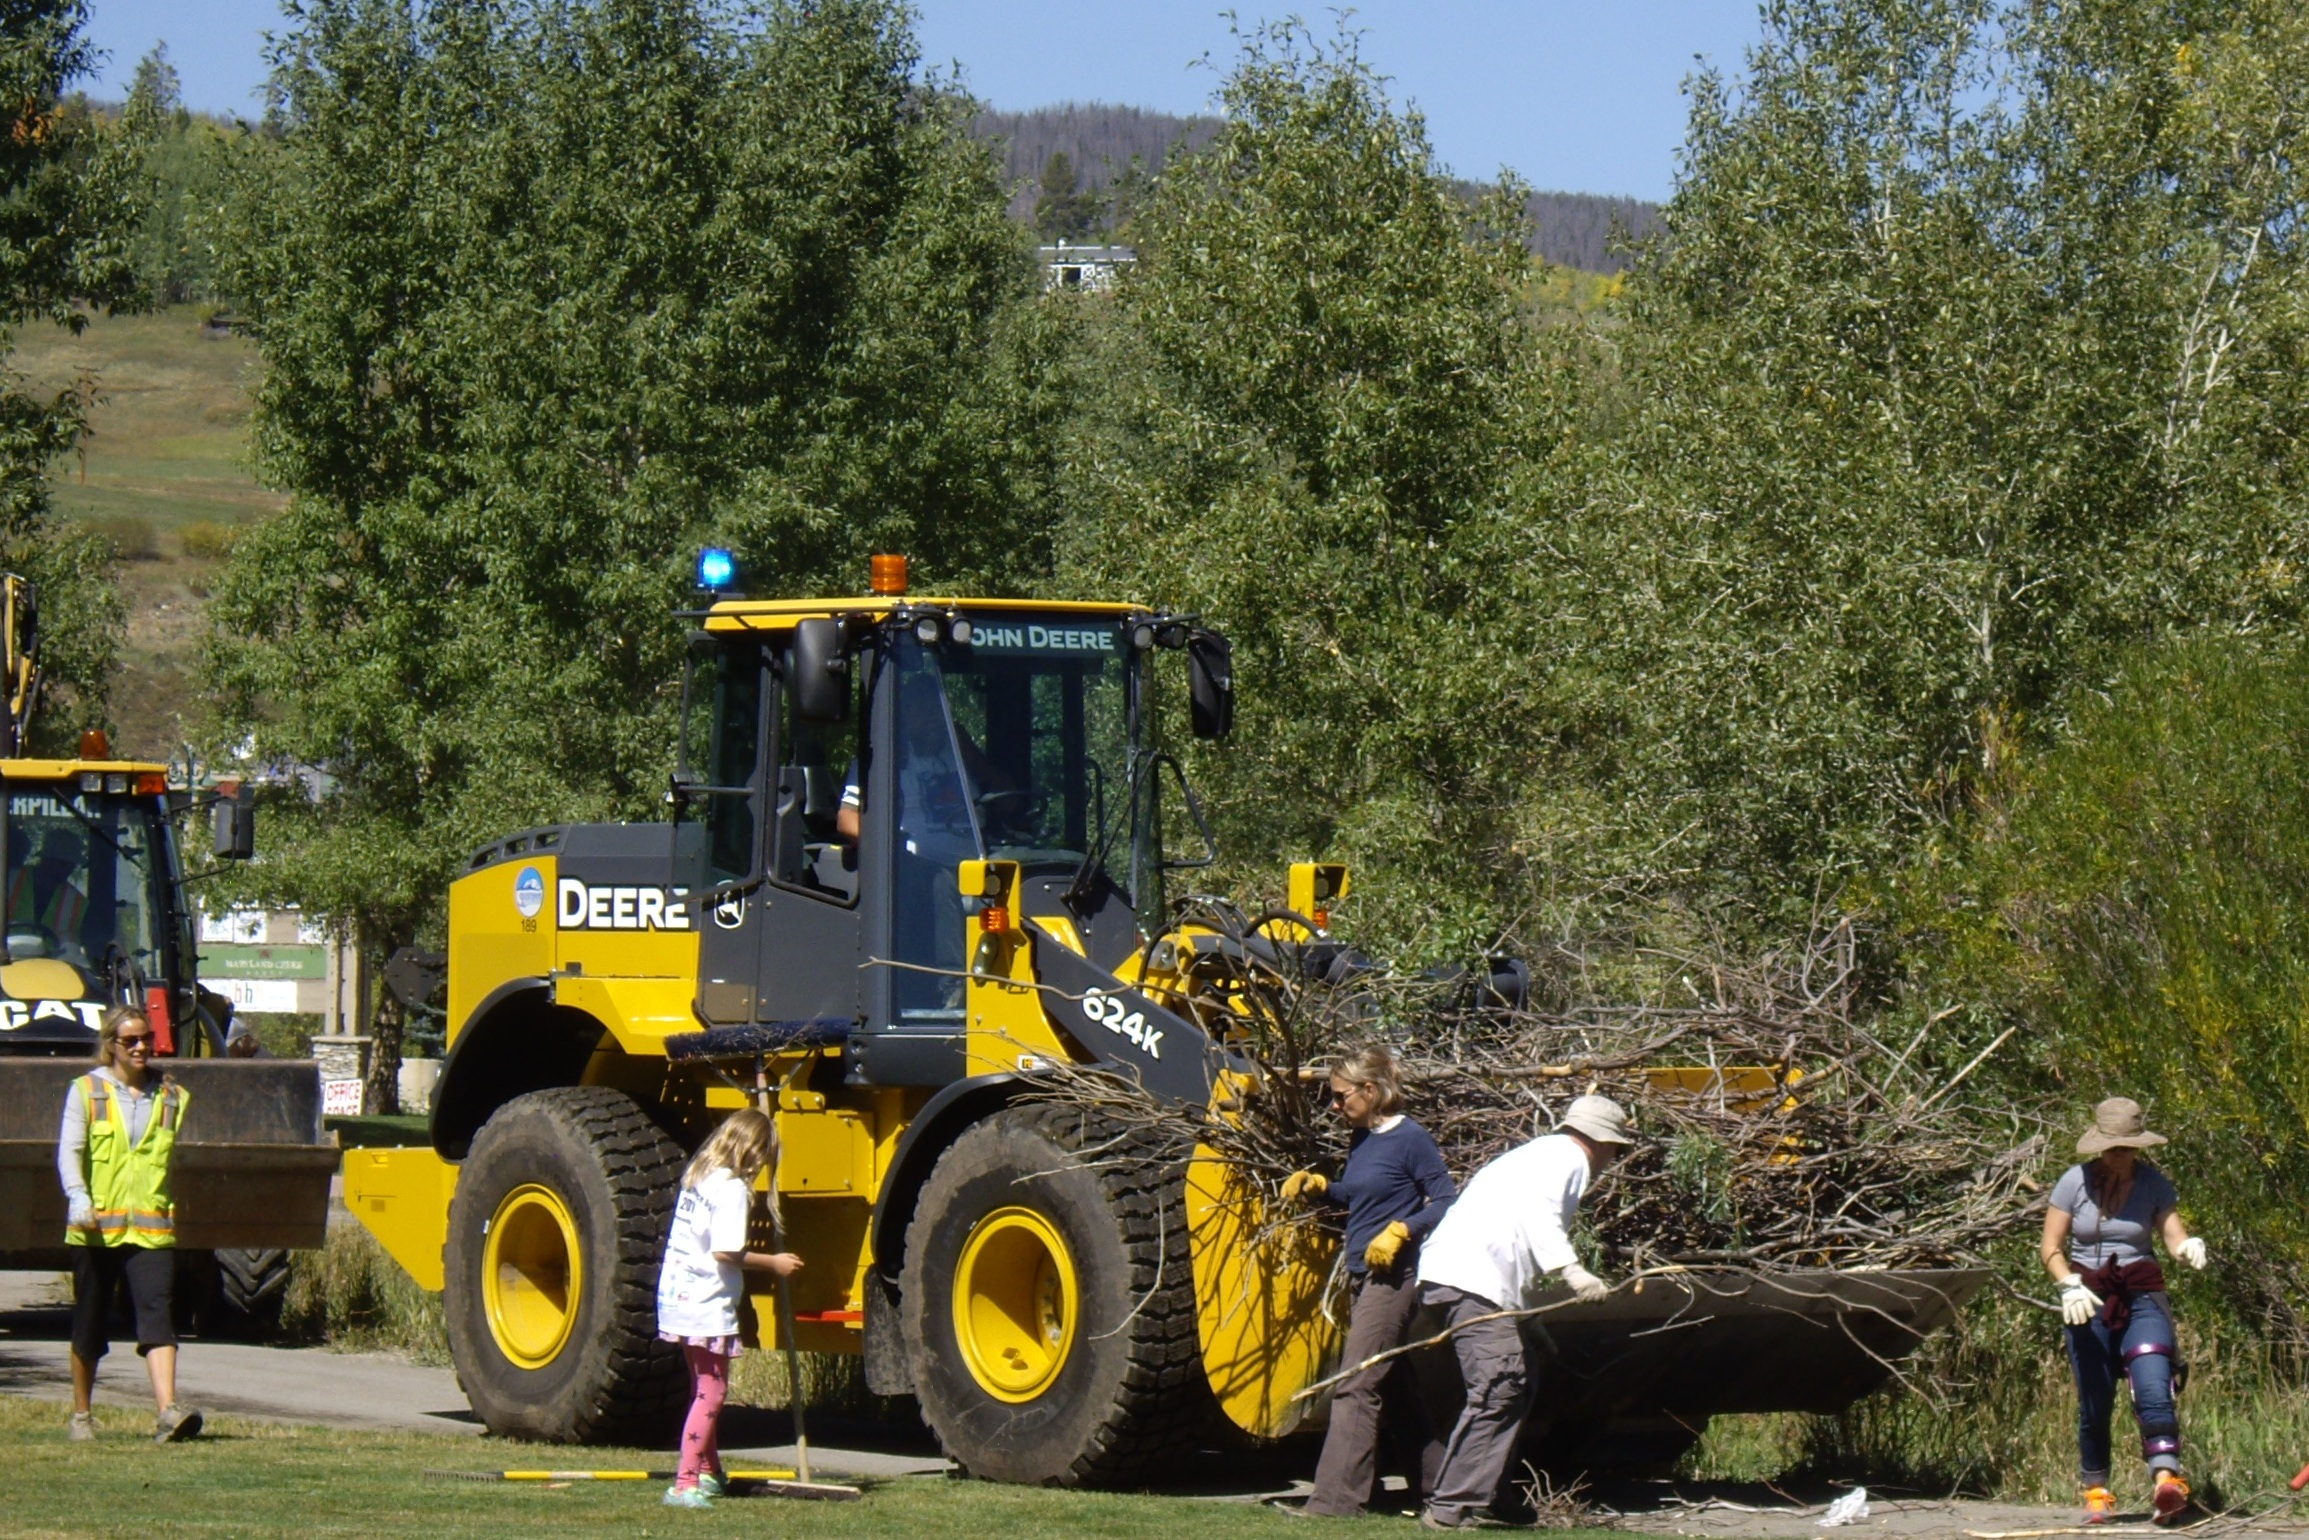 Photo of volunteers loading brush into a tractor.